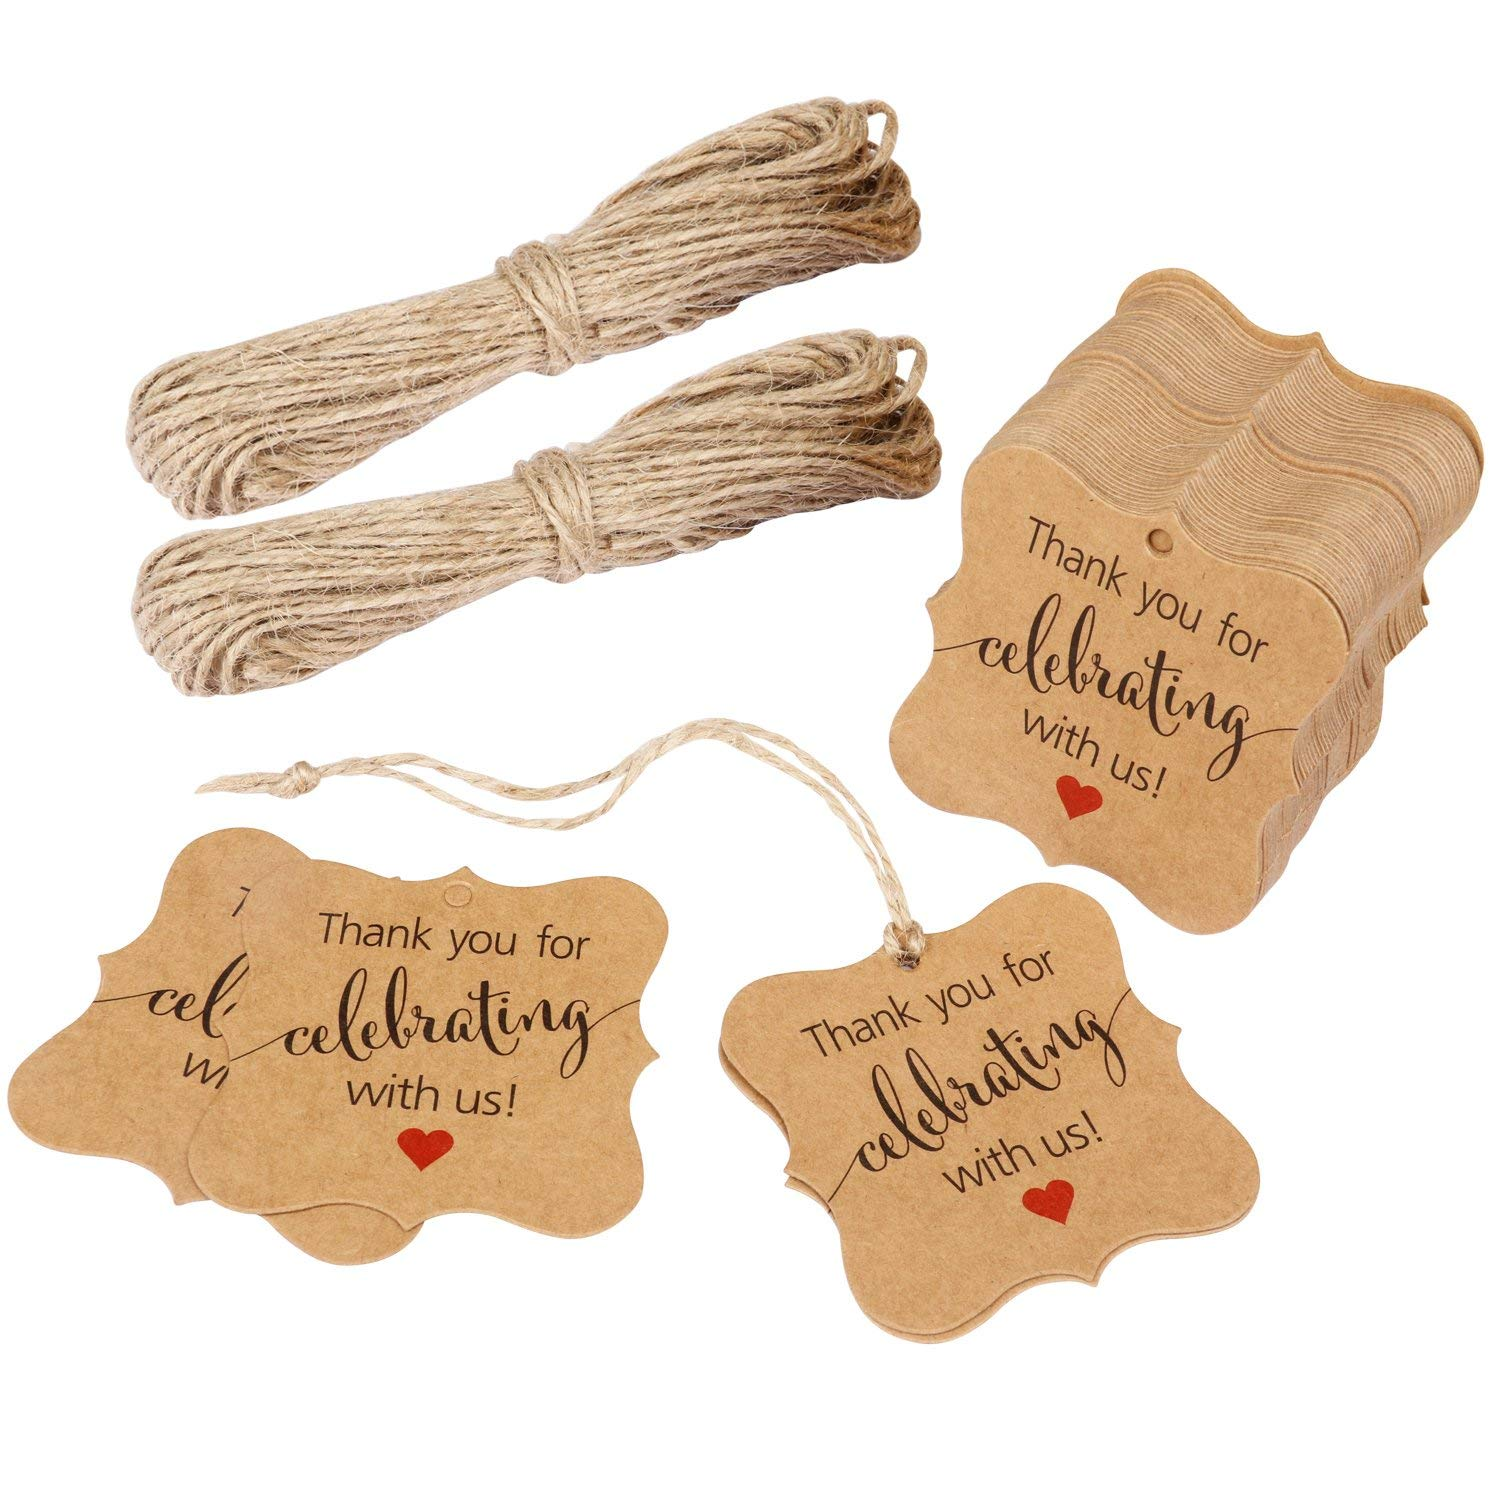 Black Thank You Tag 100 PCS Fancy Frame Gift Tags Kraft Paper Tags with Jute Twine Thank You Cards Pre-Printed Thank You for Celebrating with US